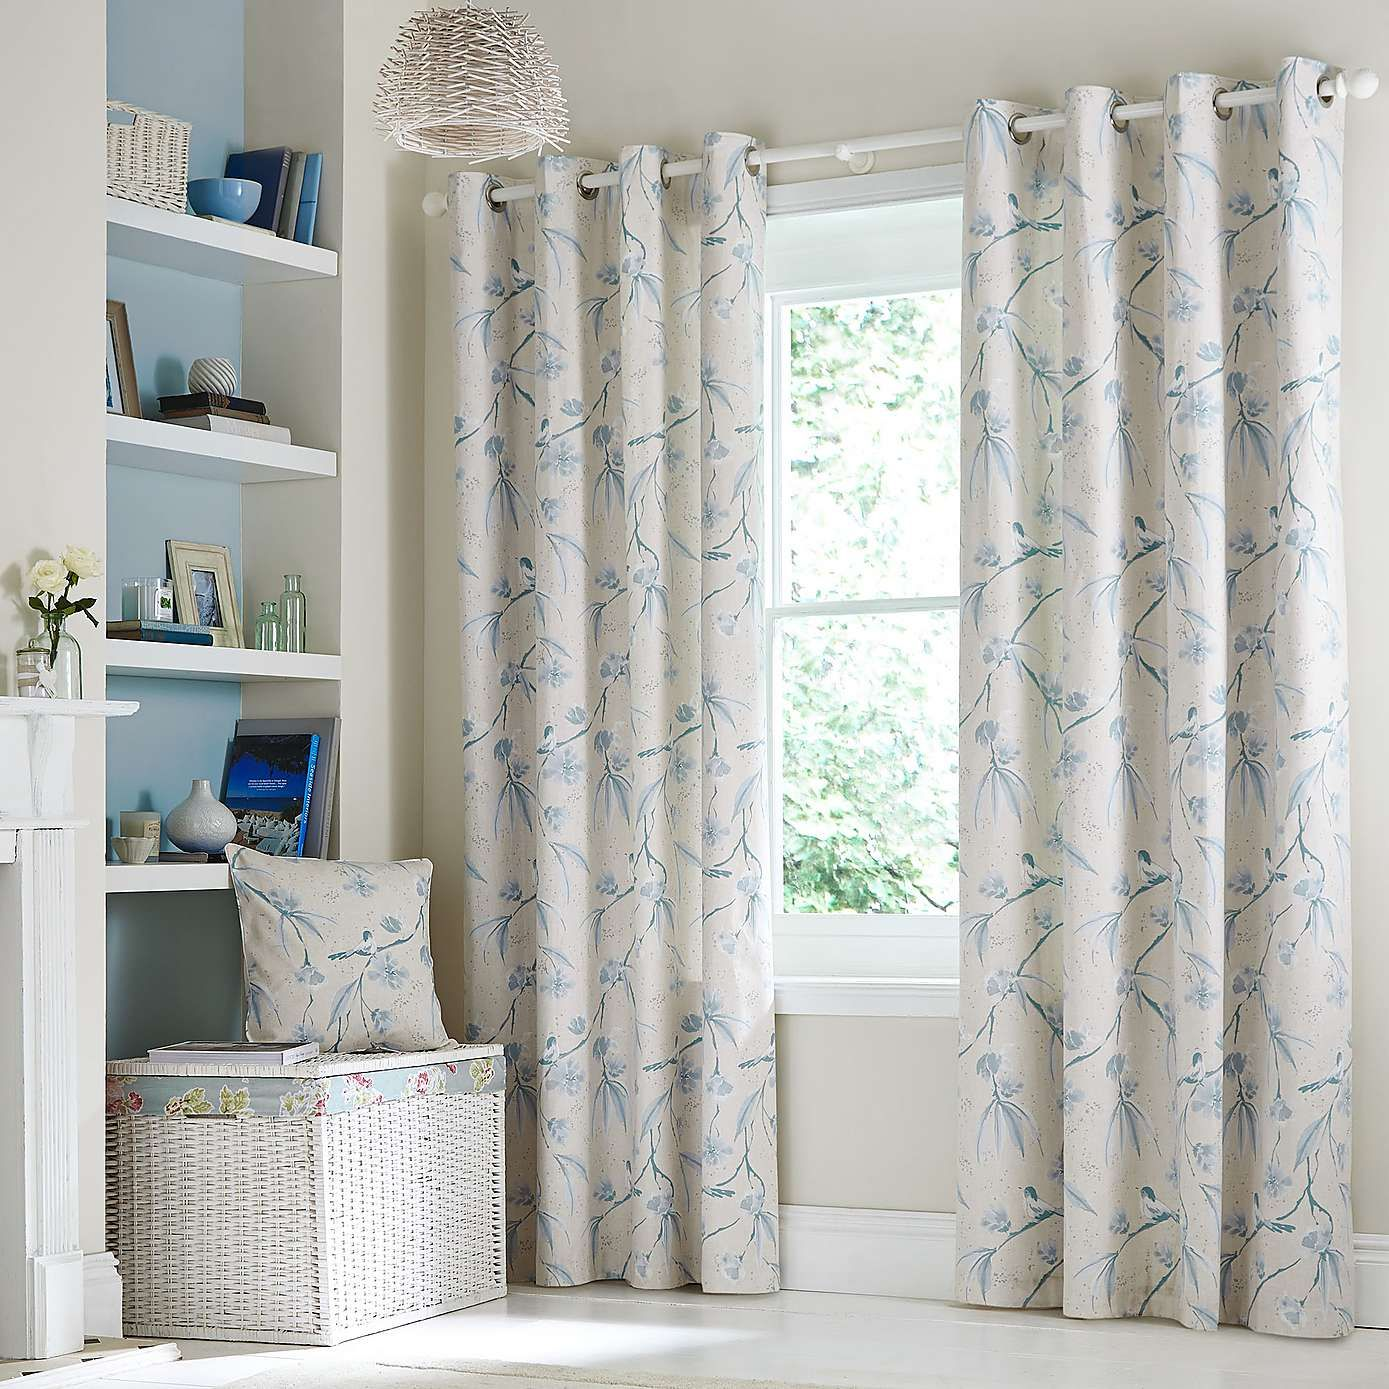 Duck Egg Laila Lined Eyelet Curtains Dunelm Curtains